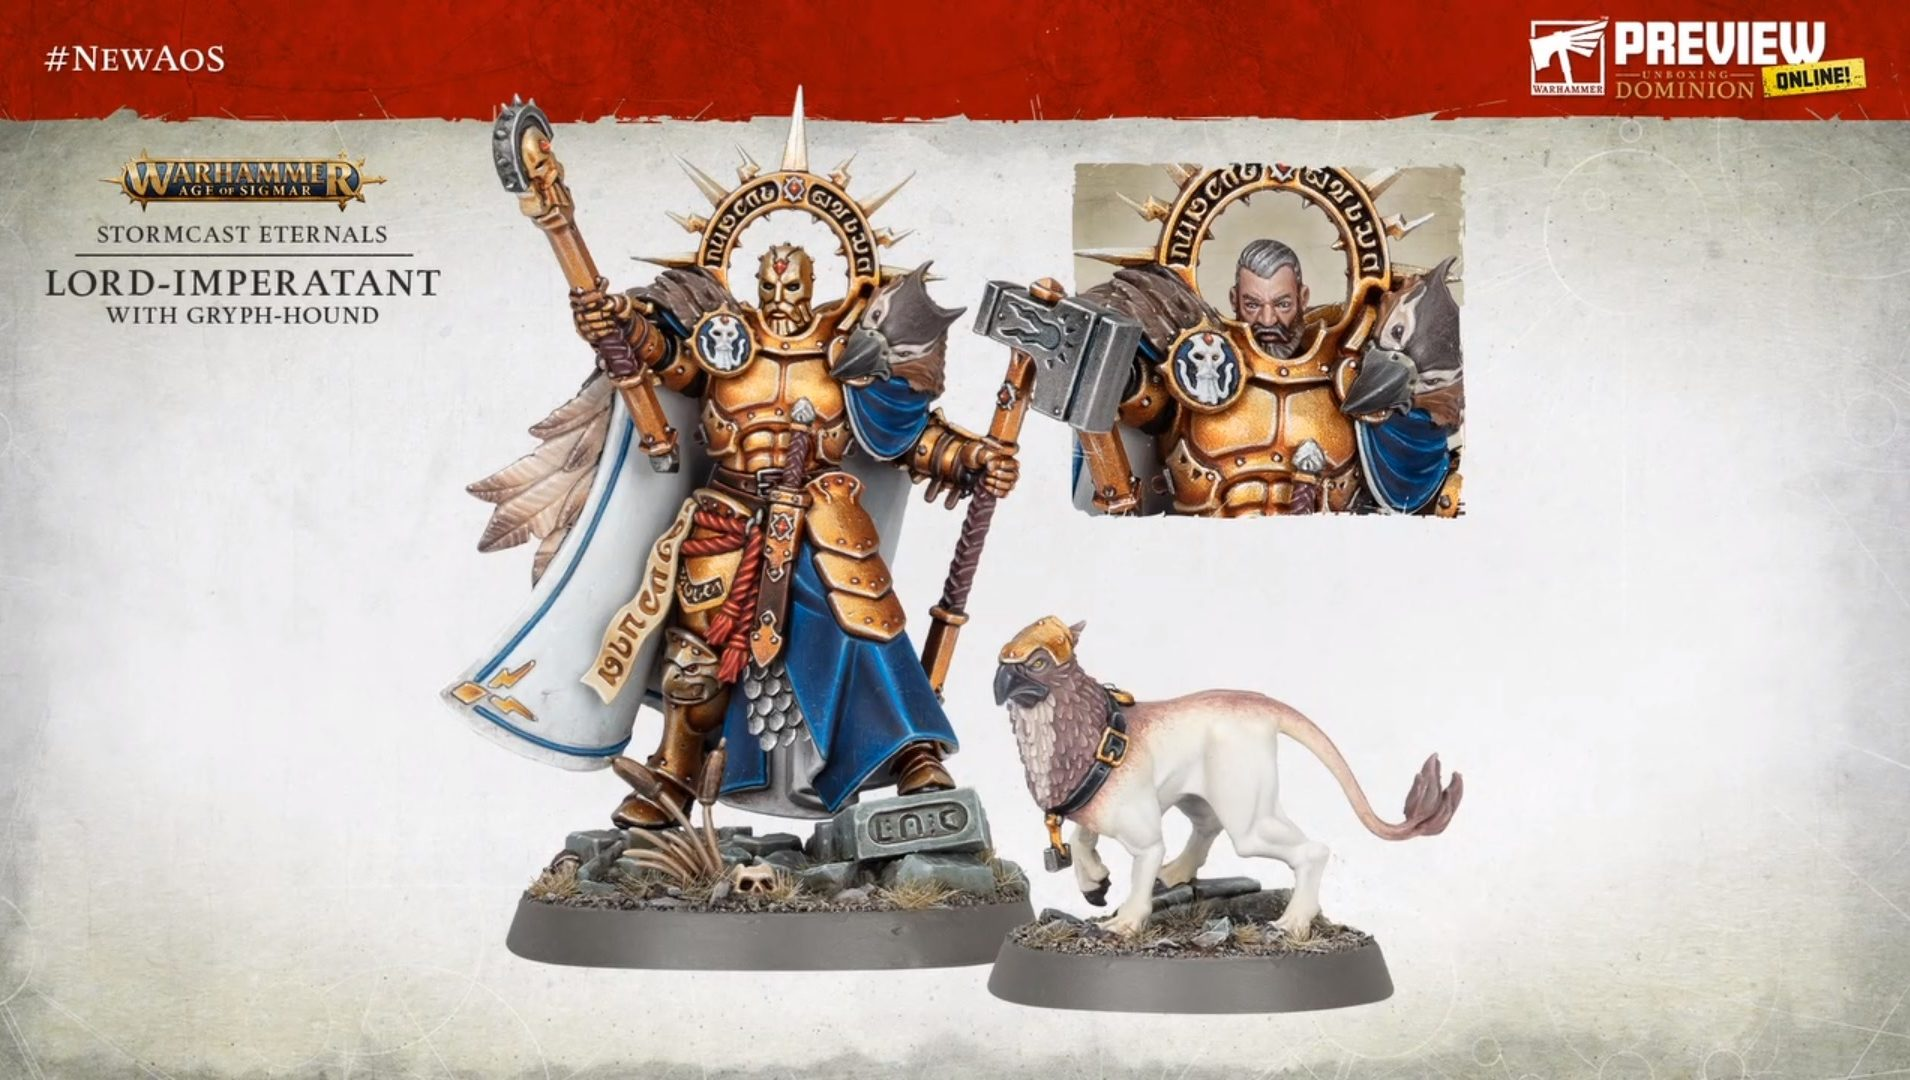 Lord-Imperatant With Gryph-Hound - Warhammer Age Of Sigmar